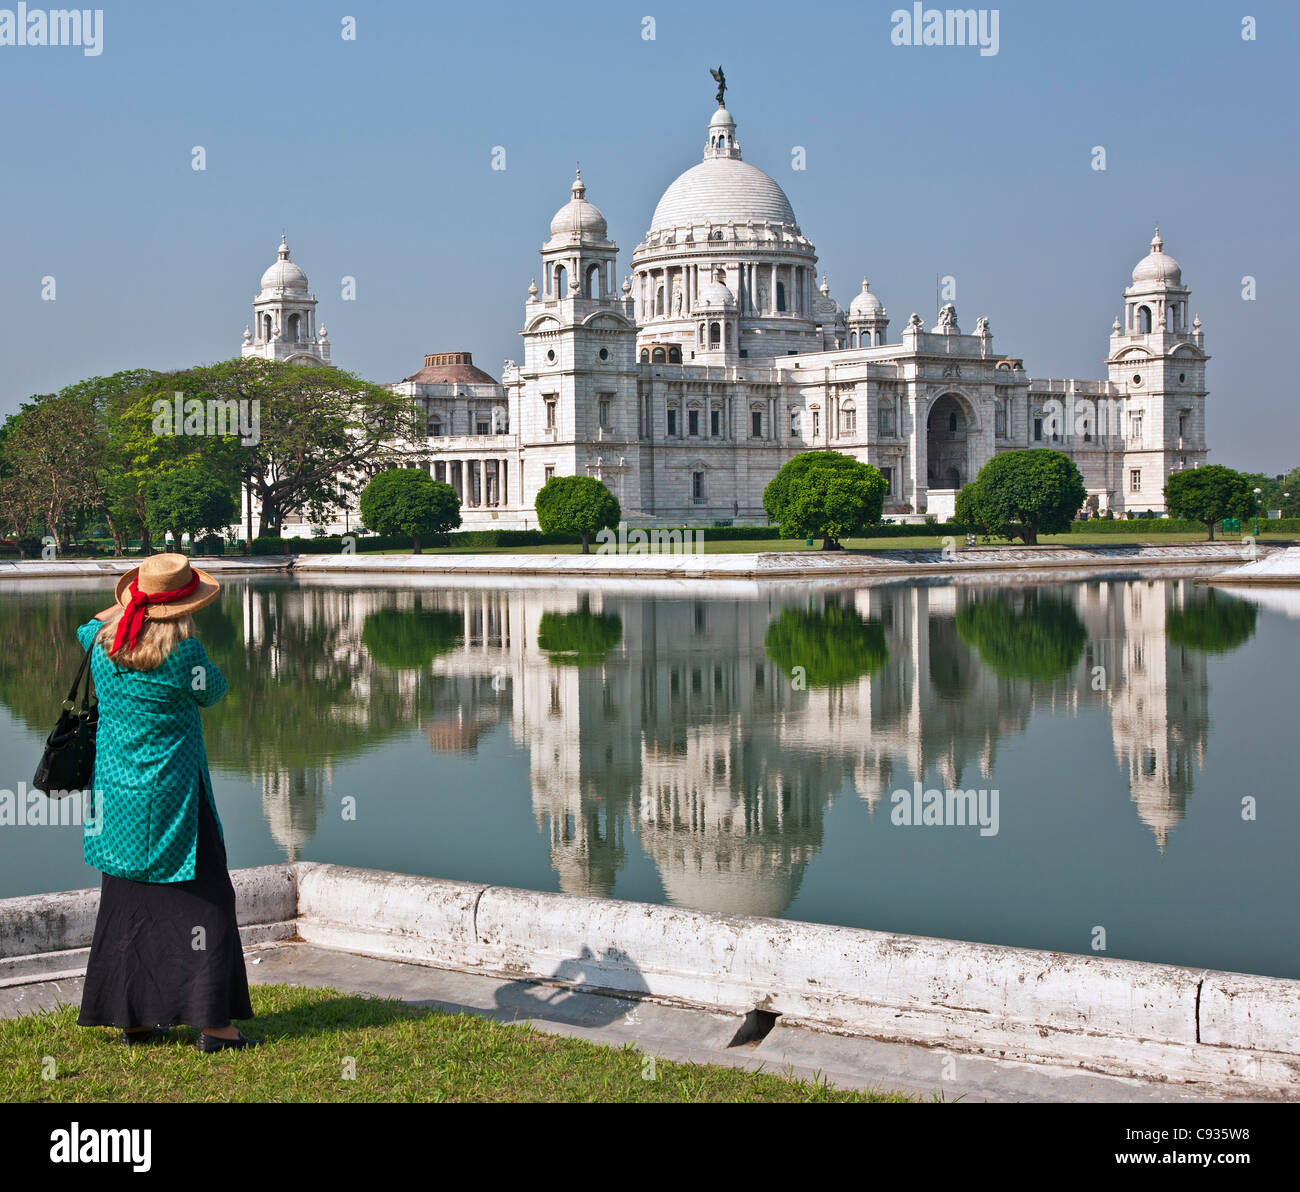 Situated in a well-tended park, the magnificent Victoria Memorial building with its white marble domes. - Stock Image